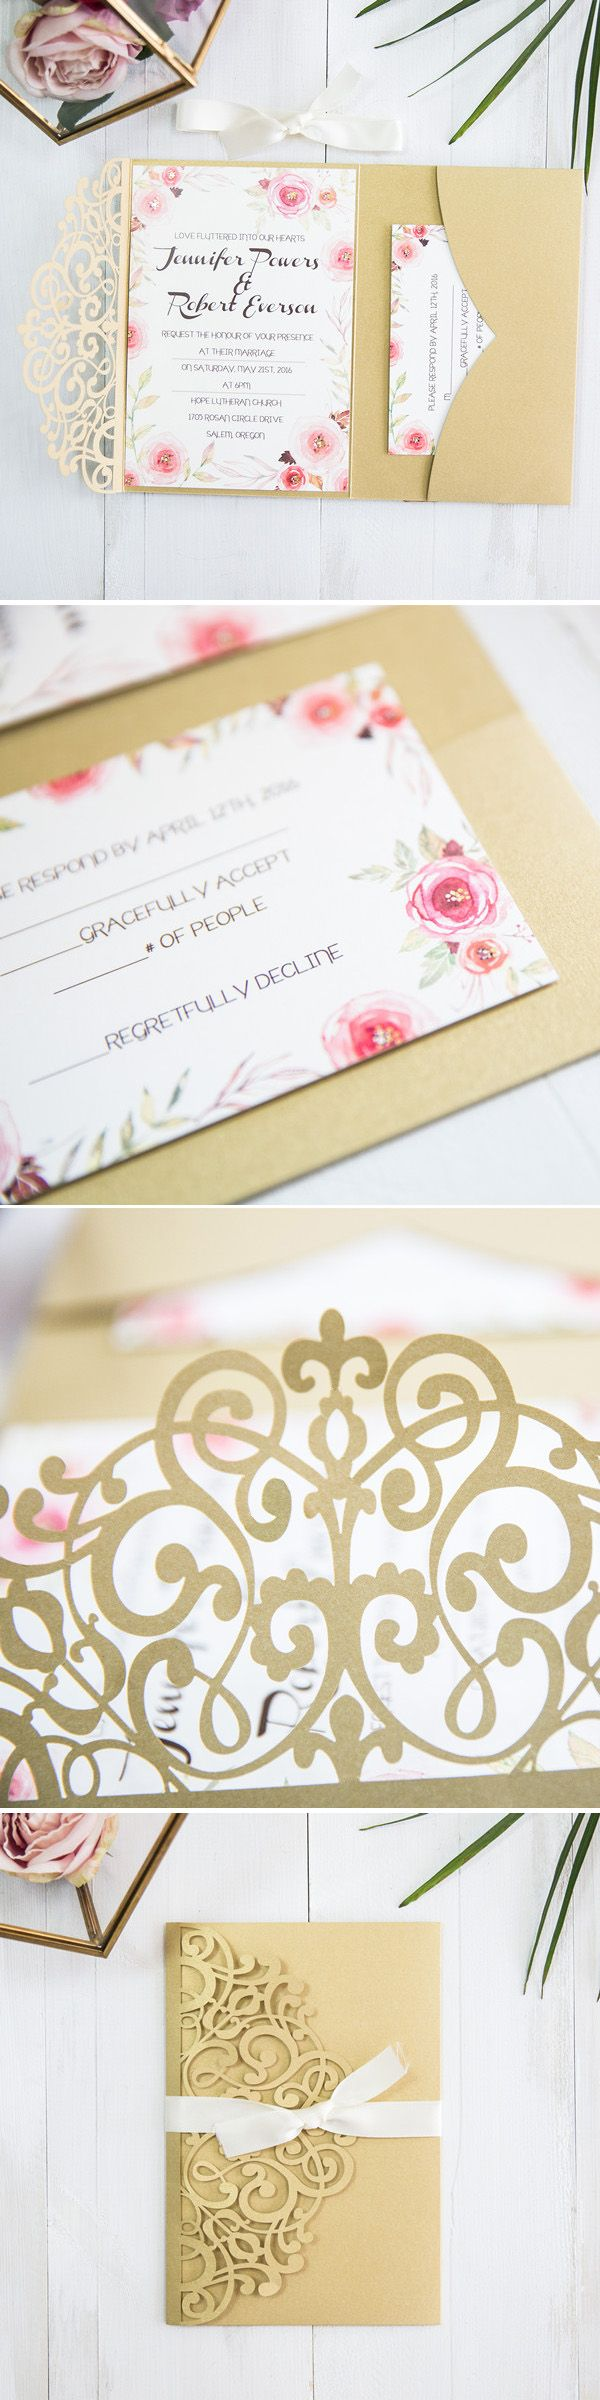 84 best Gold Foil Wedding Invitations images on Pinterest ...